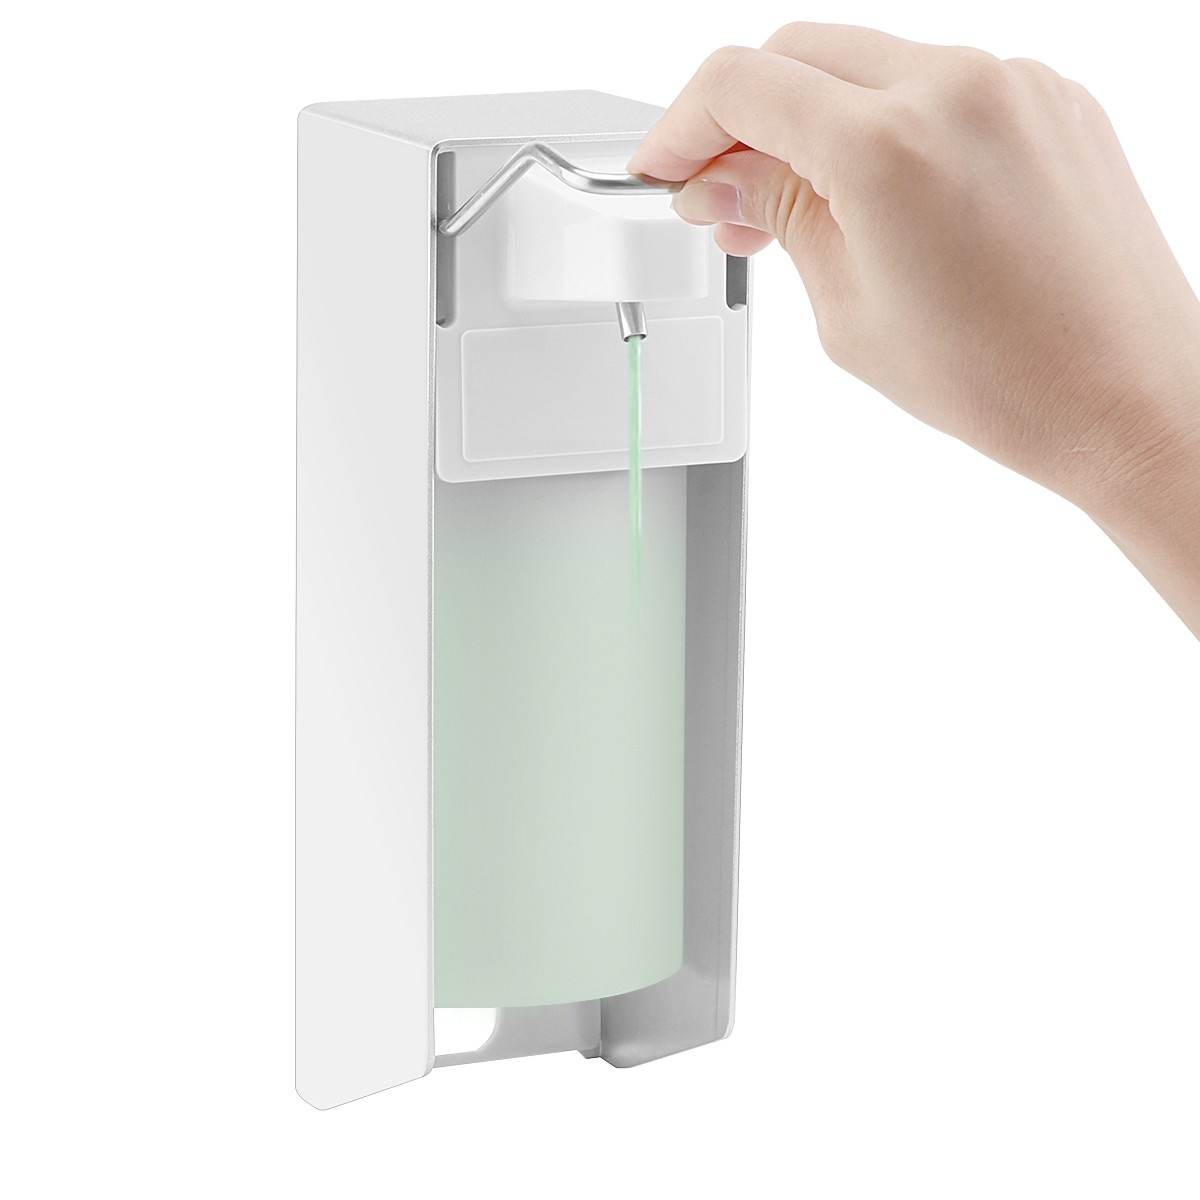 Lemonbest  500ML Soap Dispenser, ABEDOE Wall-Mounted Soap Lotion Pump Manual Type for Kitchen and Bathroom